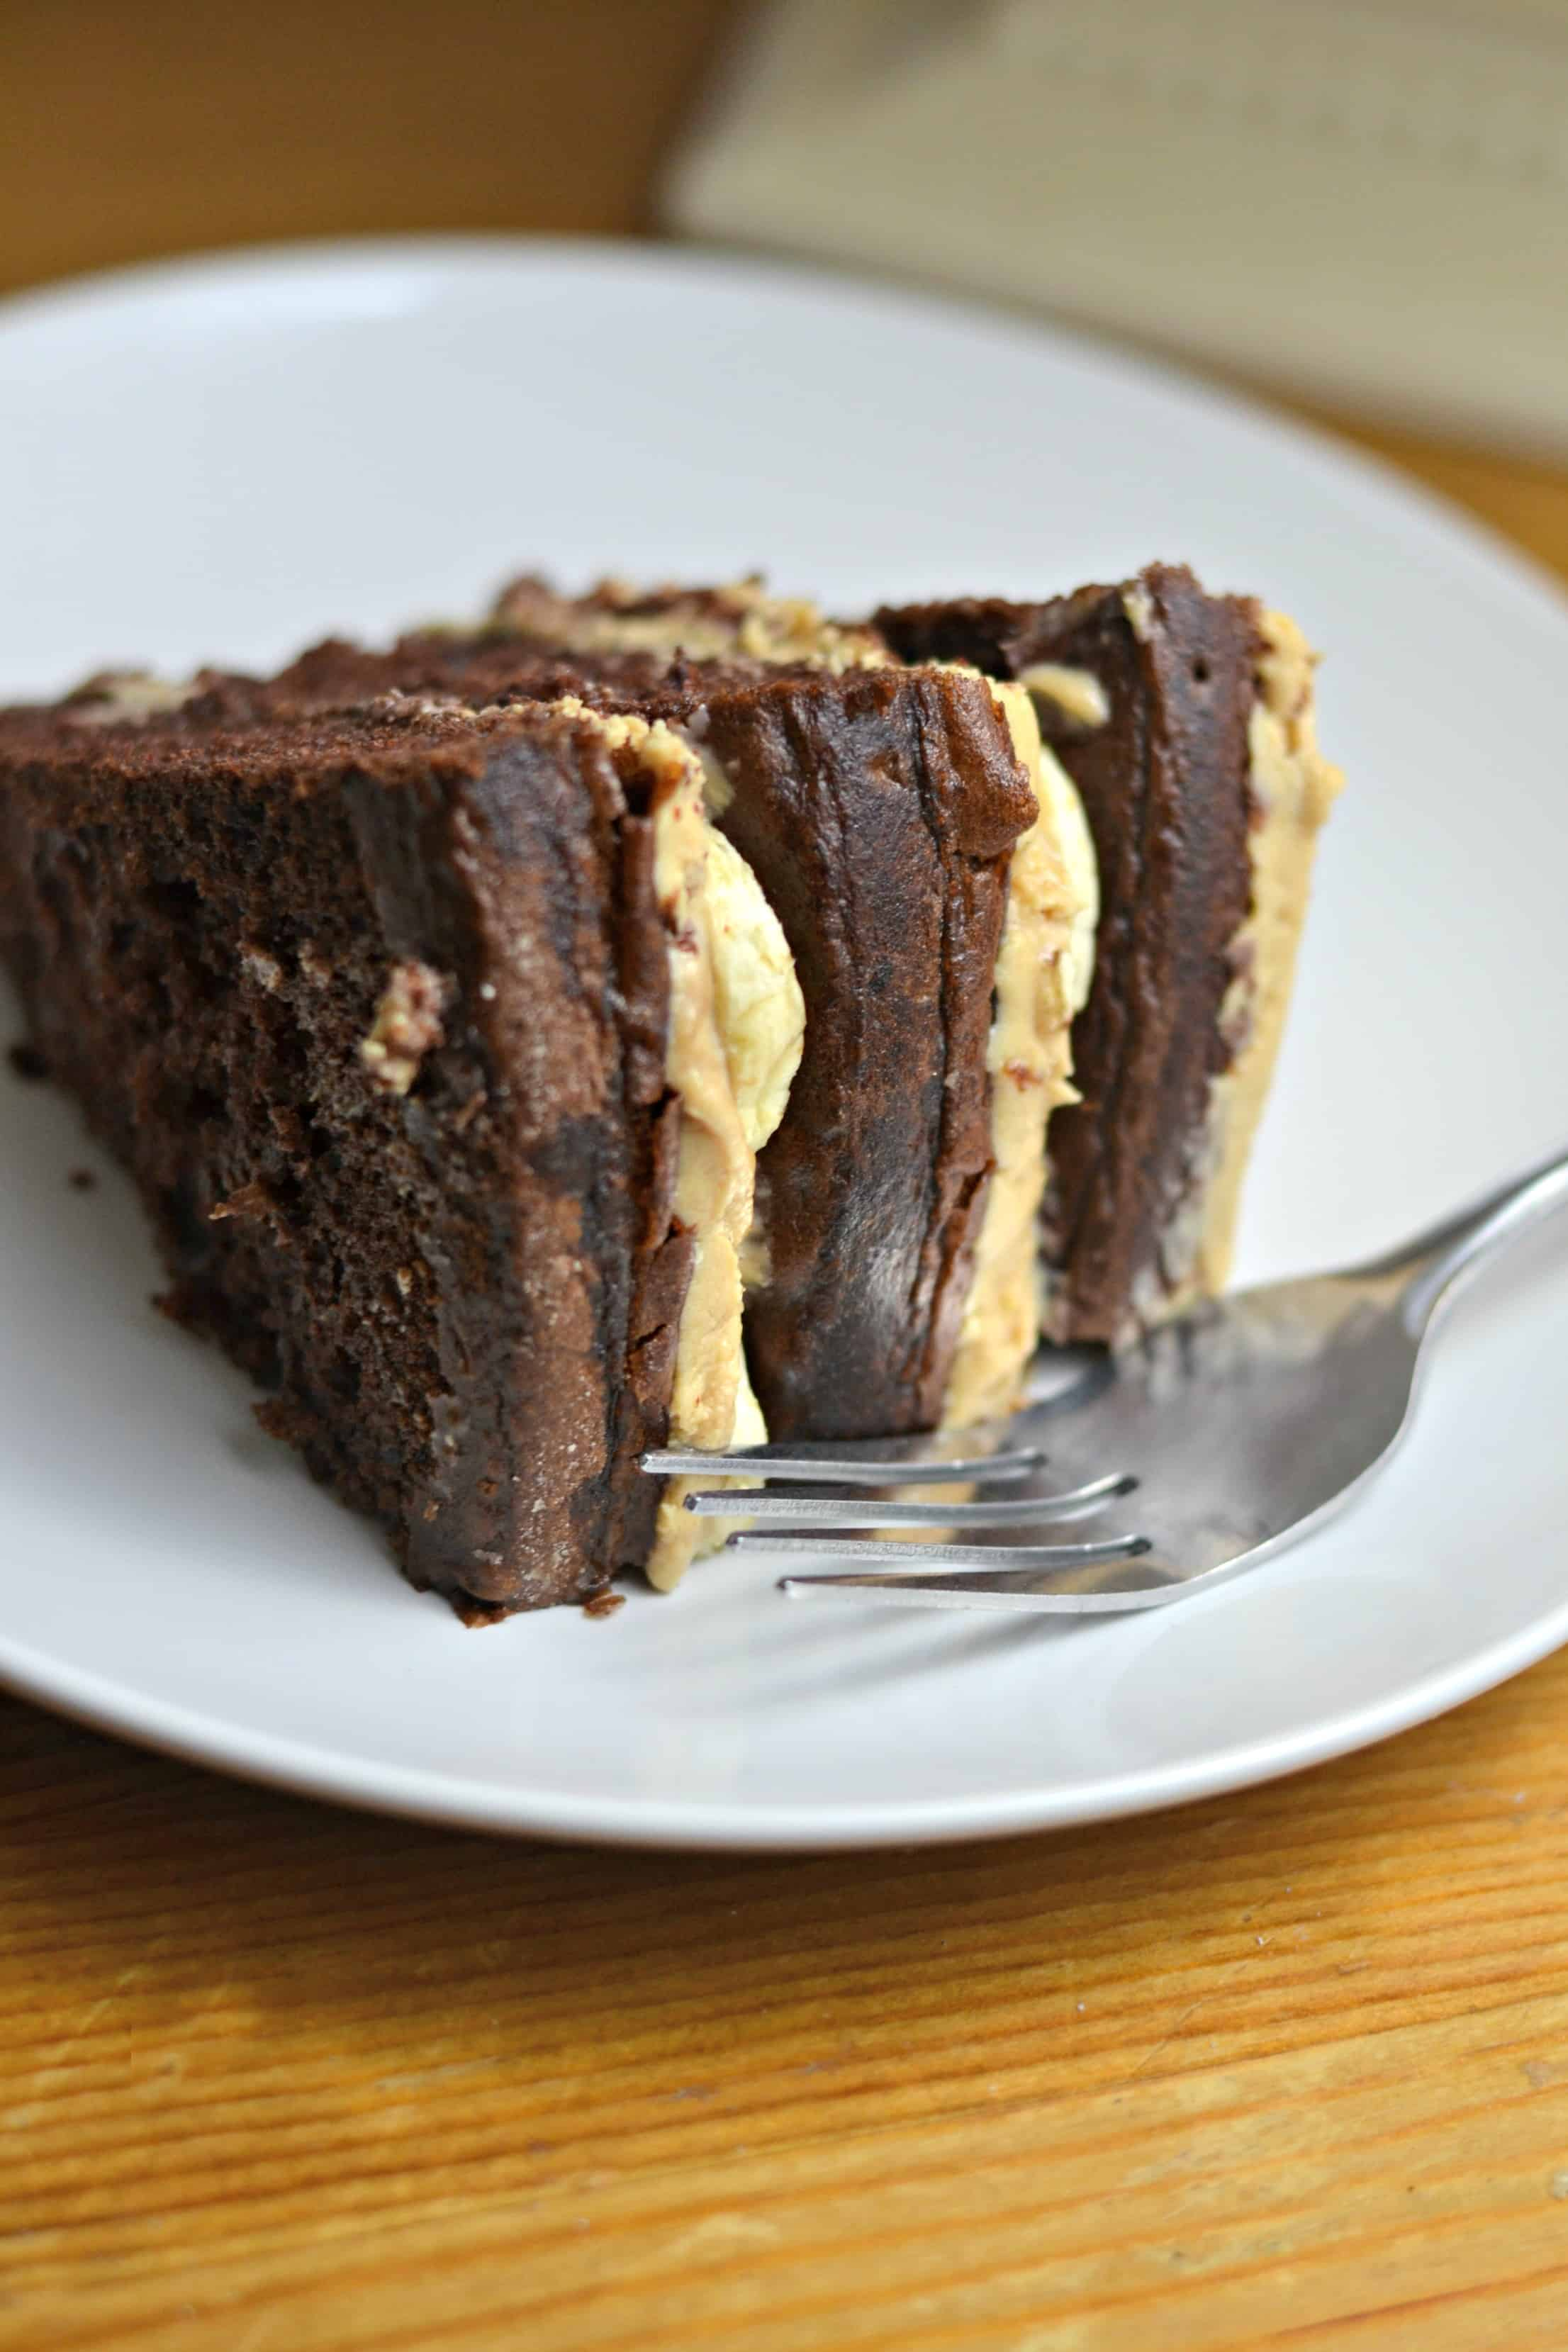 Chocolate Sour Cream Cake With Peanut Butter Frosting